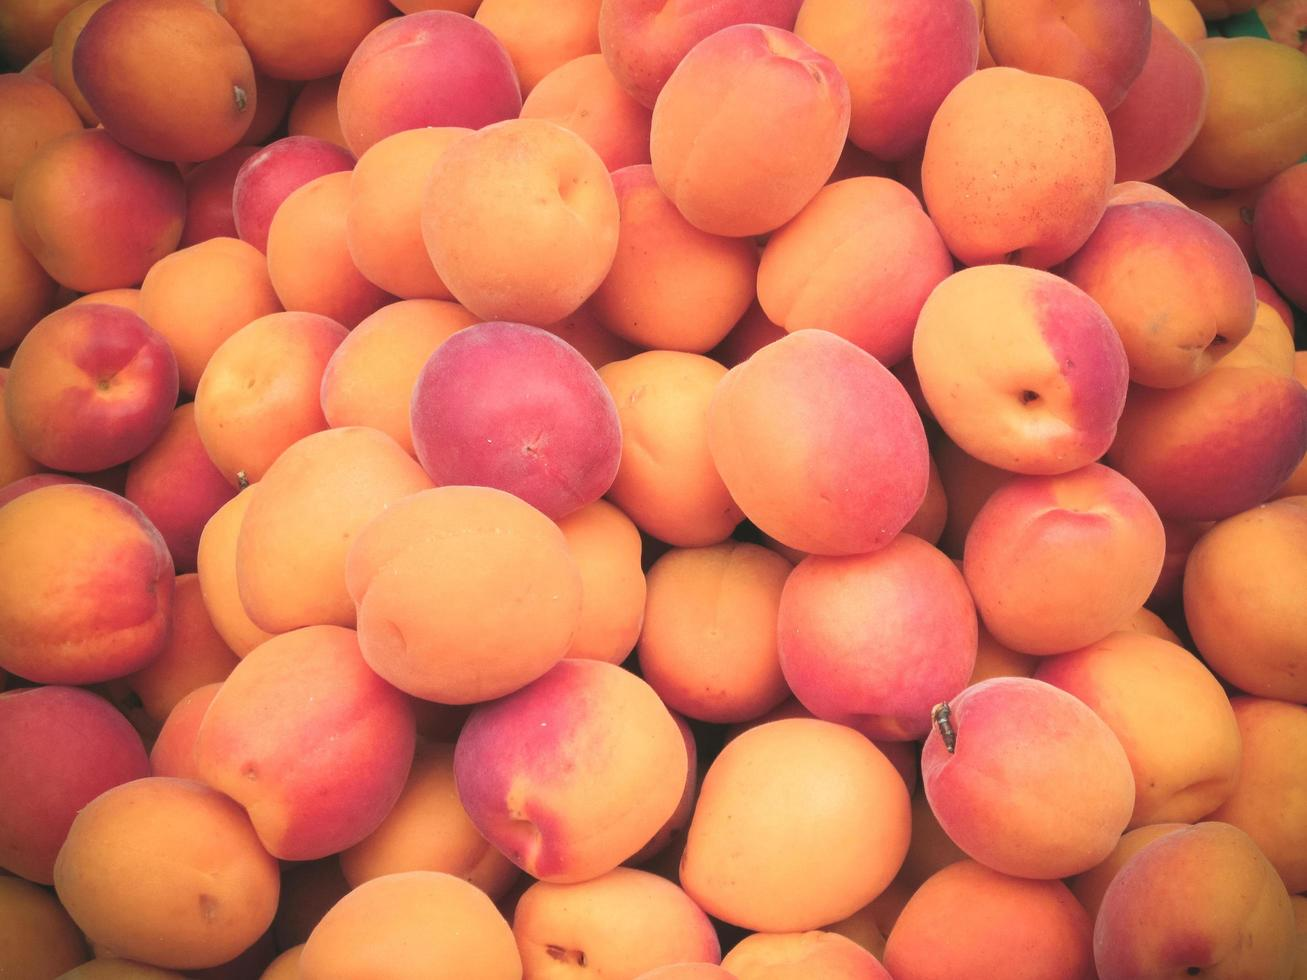 Heap of fresh ripe peaches for sale at the market. photo